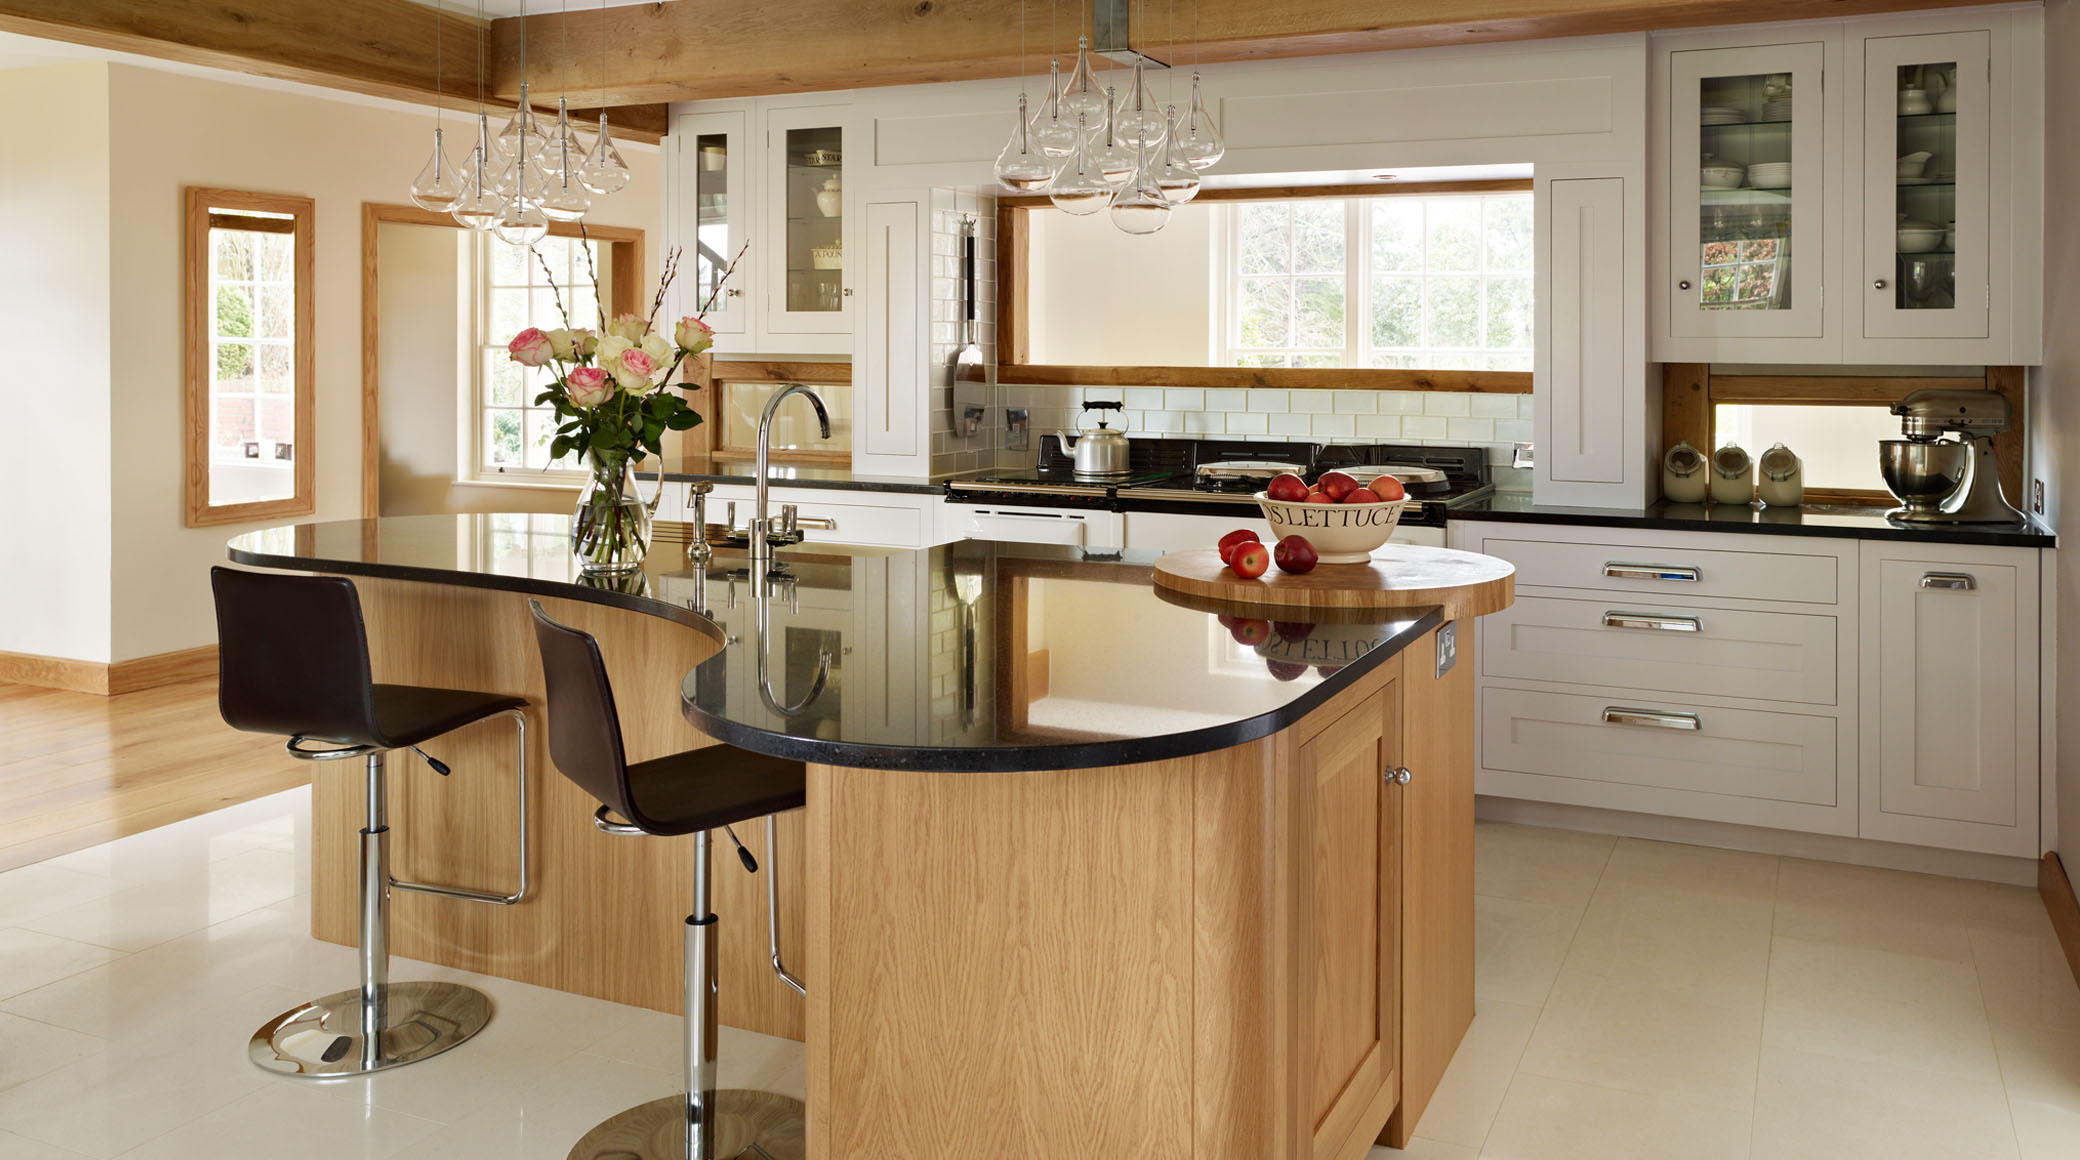 Ordinaire Curved Kitchen Island Made From Wood With Black Glass Surface Sink And  Faucet Two Barstools Two